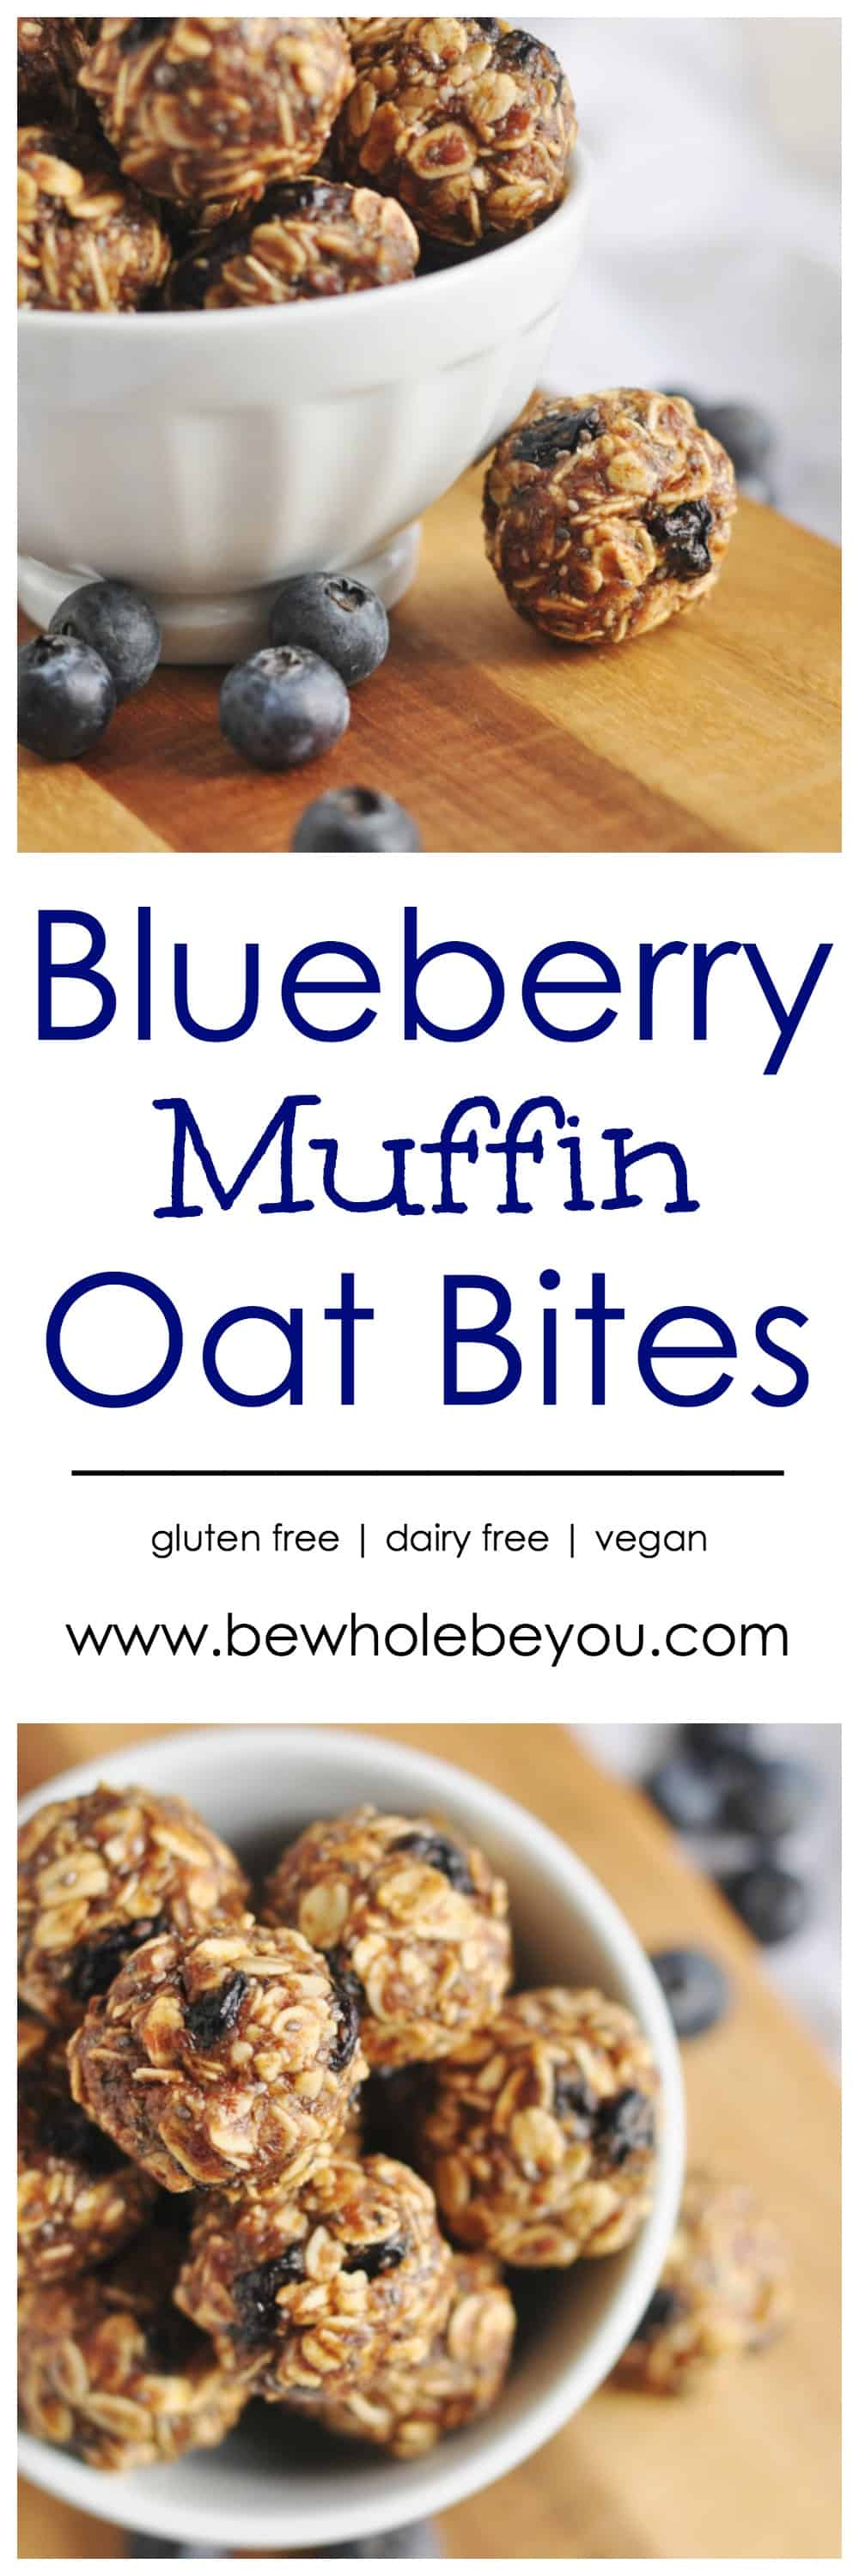 Blueberry Muffin Oat Bites. Be Whole. Be You.